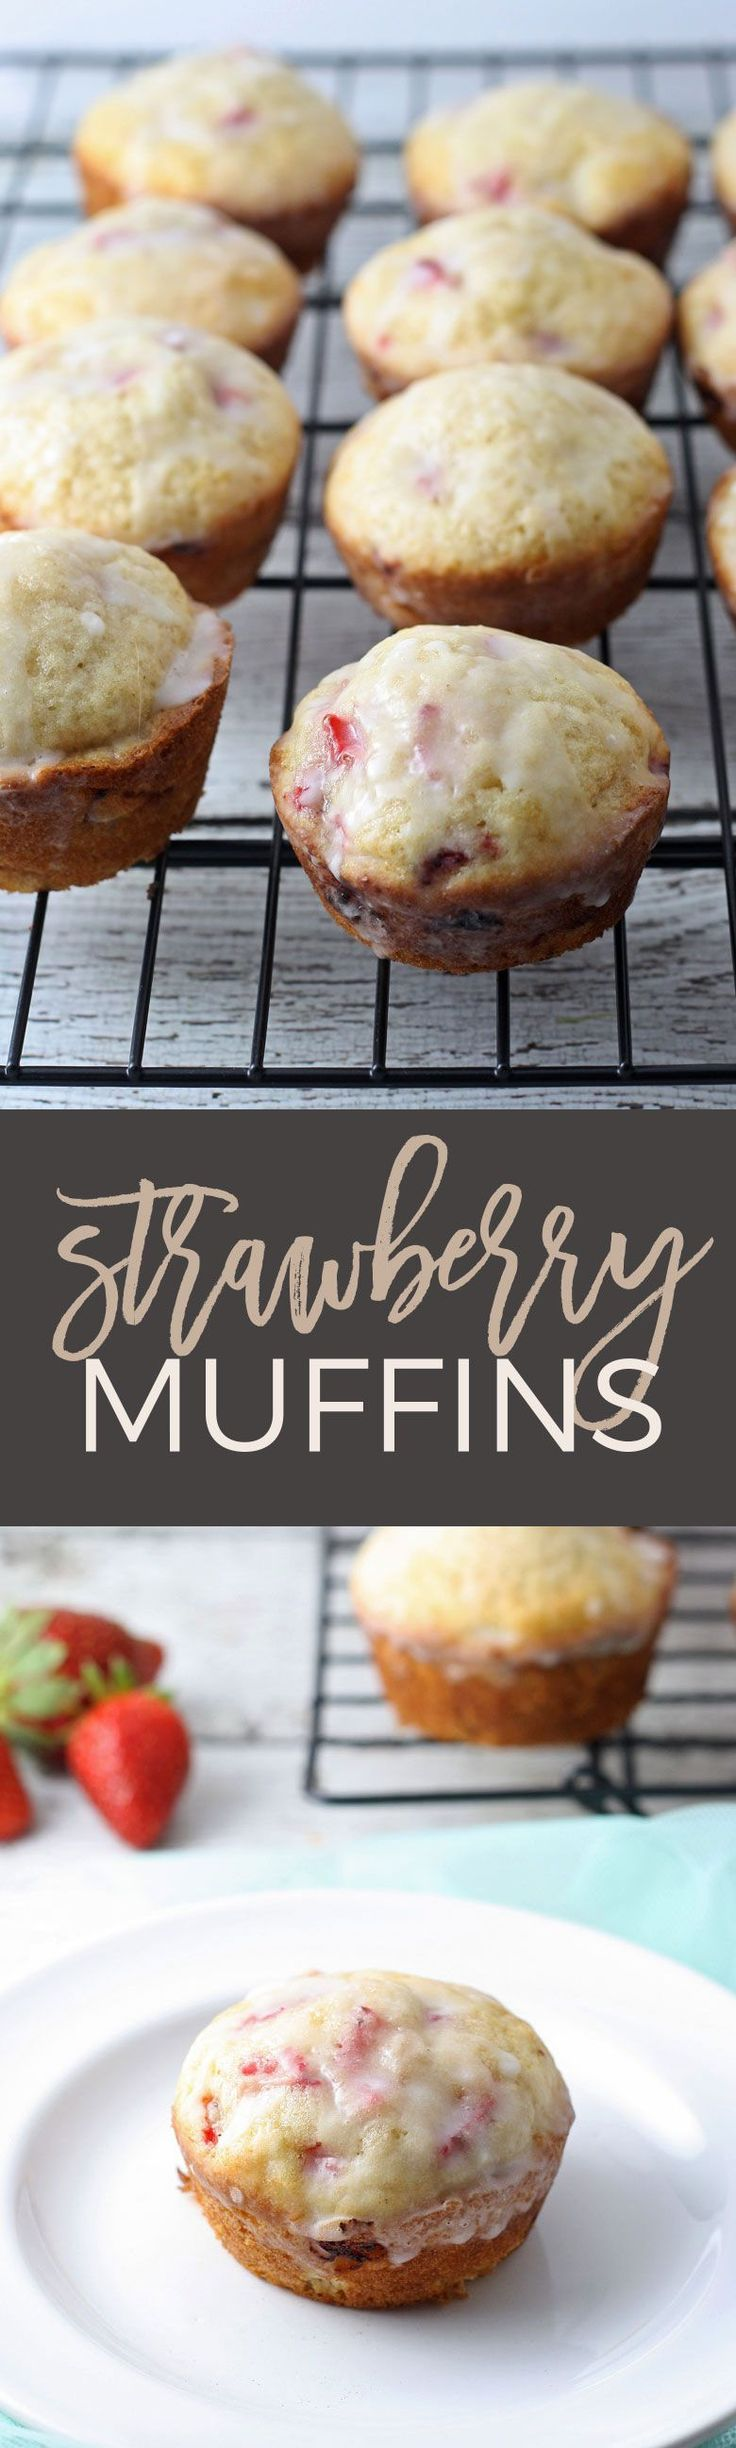 These strawberry muffins with glaze are easy to make - they're super moist, delicious and the strawberries will melt in your mouth! | honeyandbirch.com | breakfast | muffin | recipe | easy | healthy | strawberry | berry | best | homemade